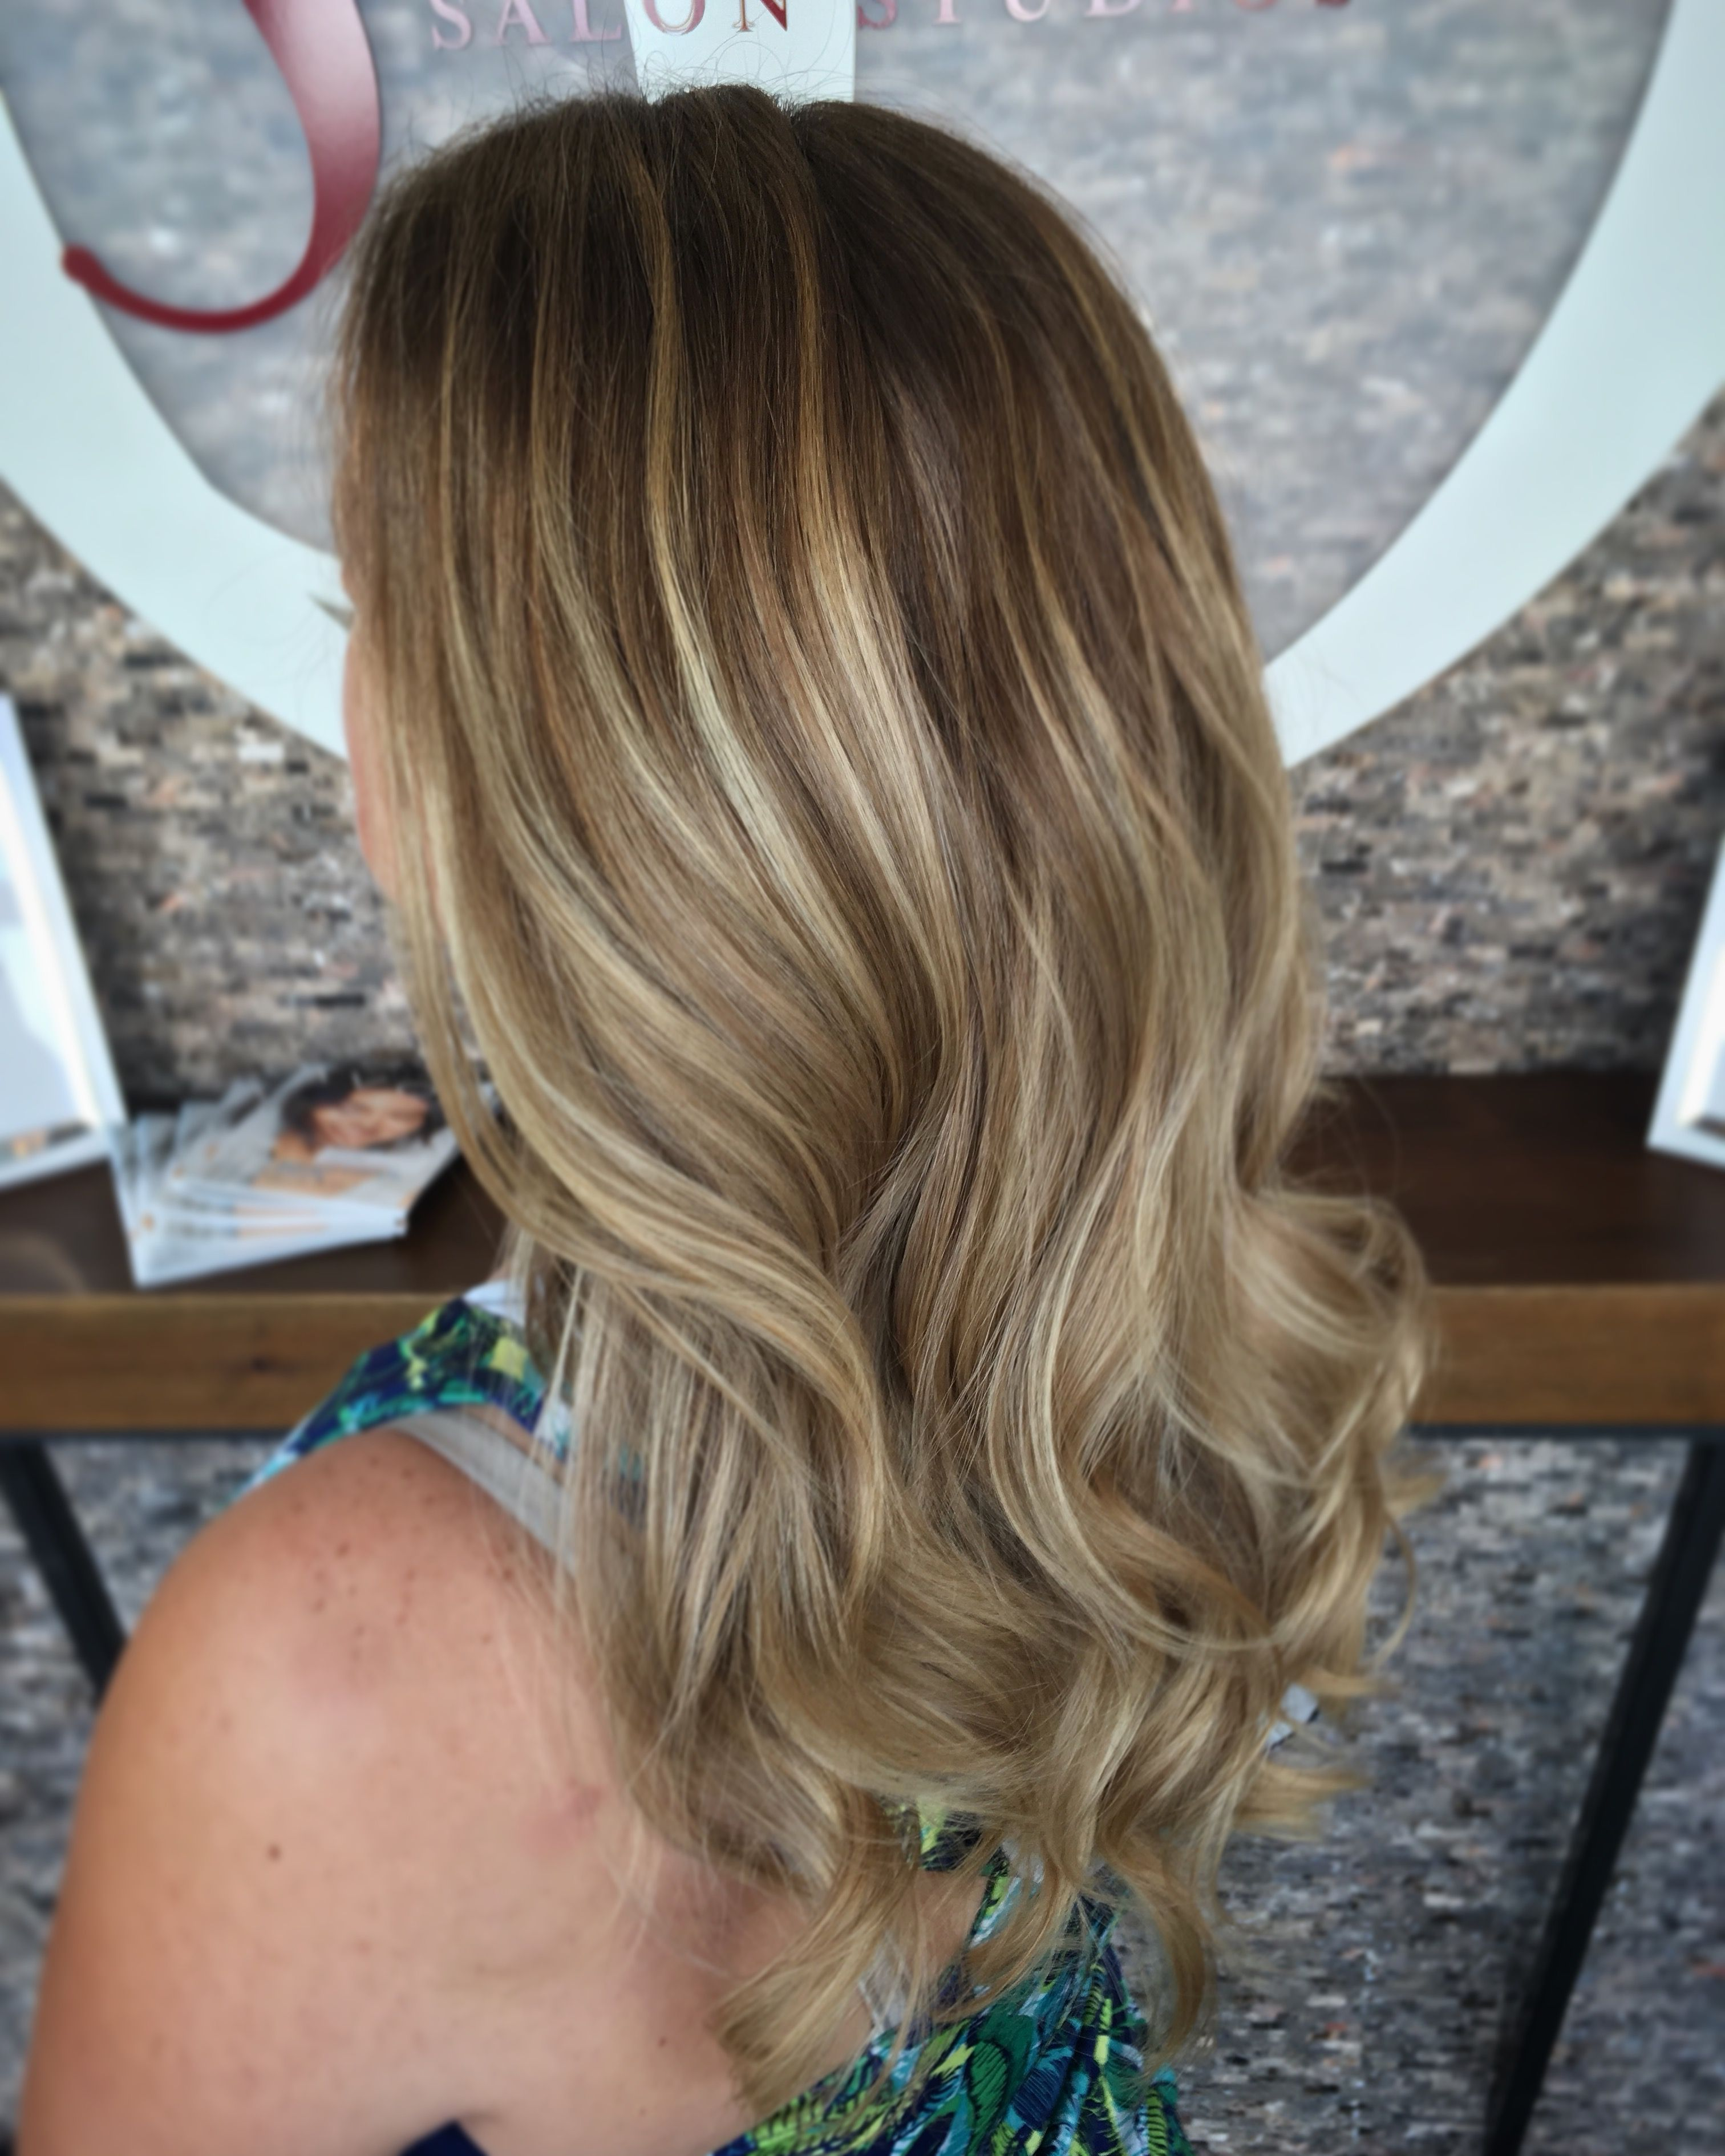 Natural Balayage Highlights Pretty Summer Hair Created A Soft Look By Weaving Lowlights Through Her Grown Out